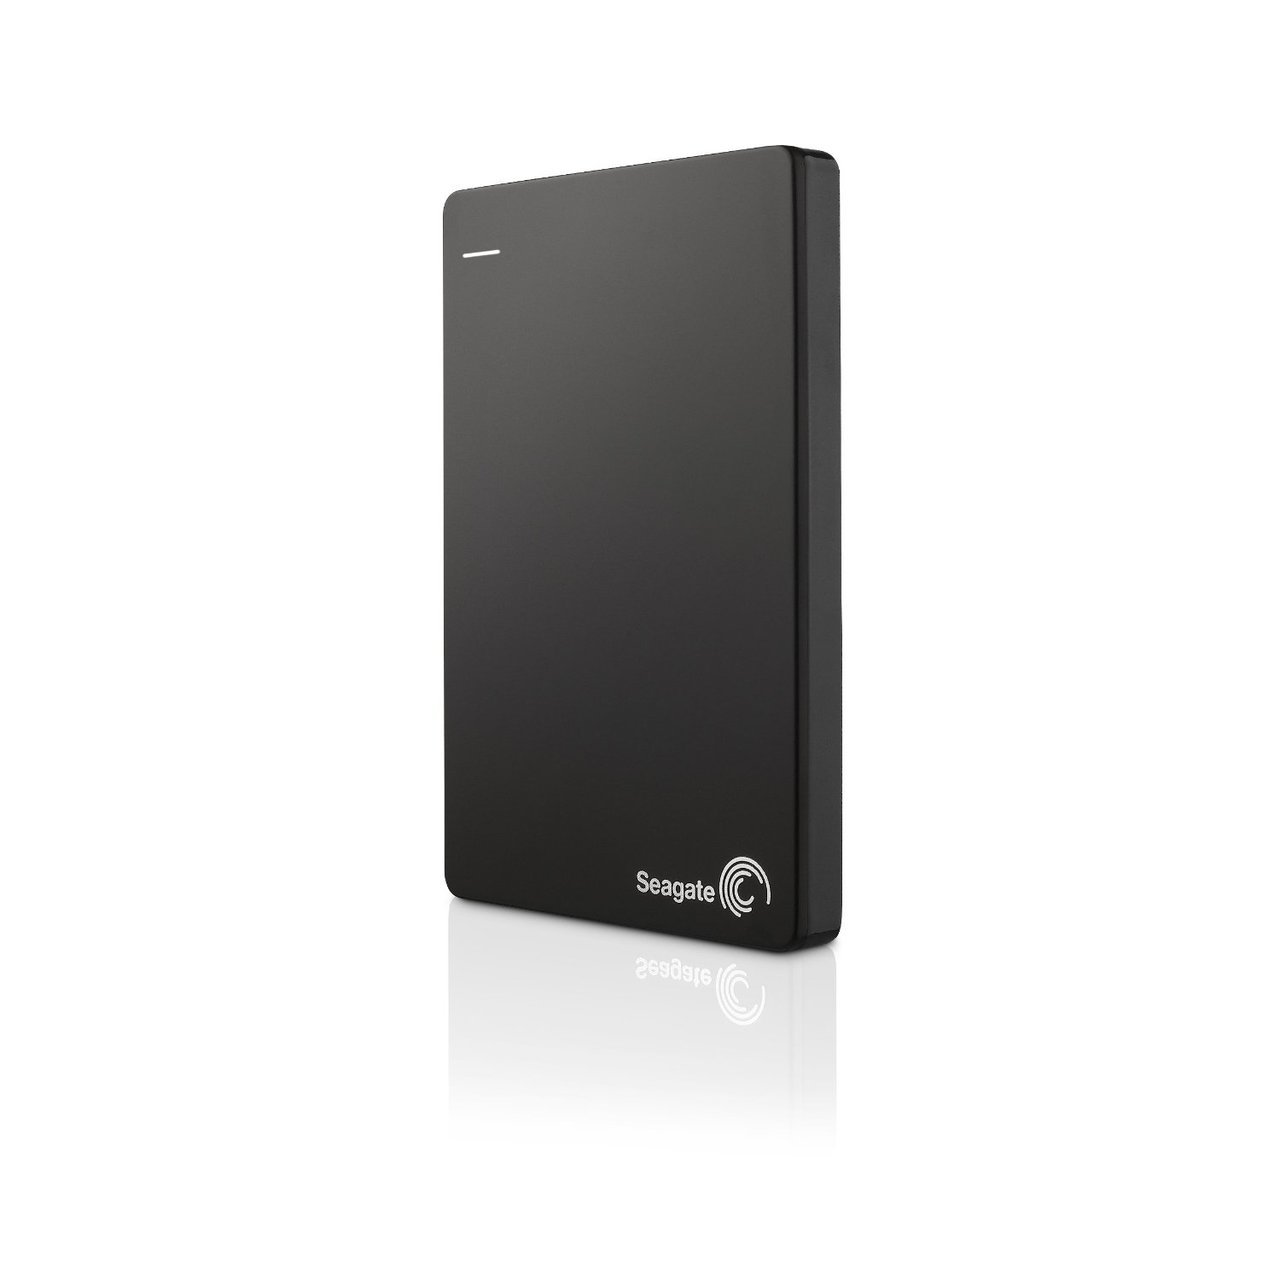 Seagate Backup Plus Slim 1TB Portable External Hard Drive with Mobile Device Backup USB 3.0 (Black) STDR1000100